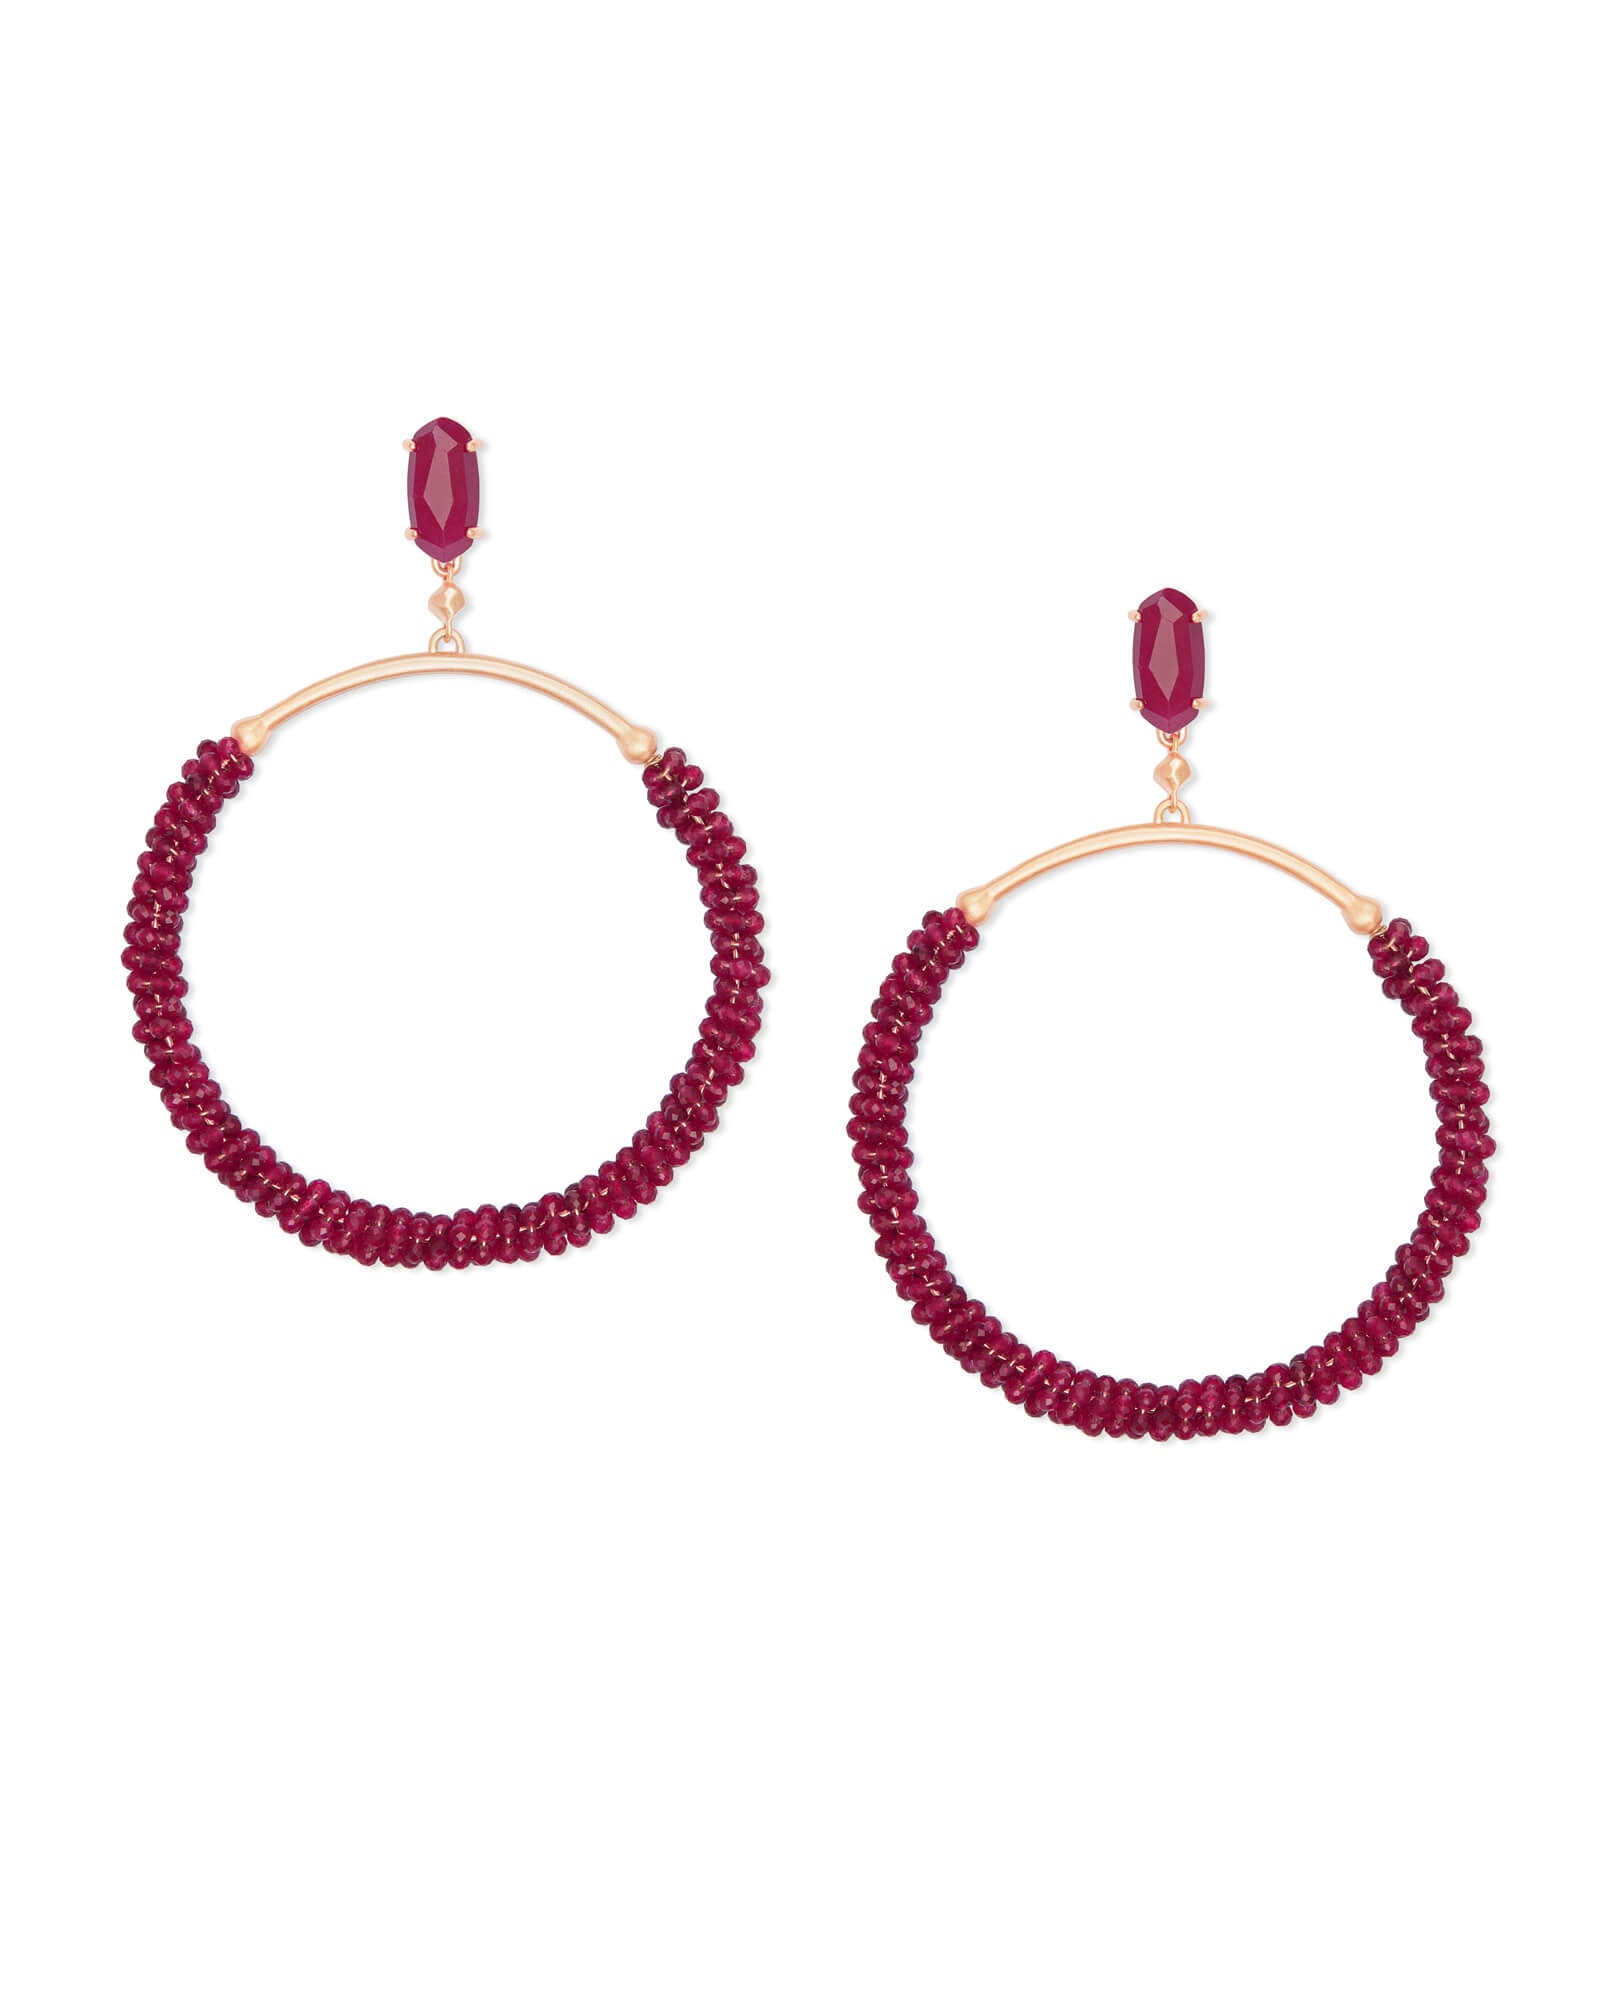 Russel Rose Gold Hoop Earrings in Maroon Jade